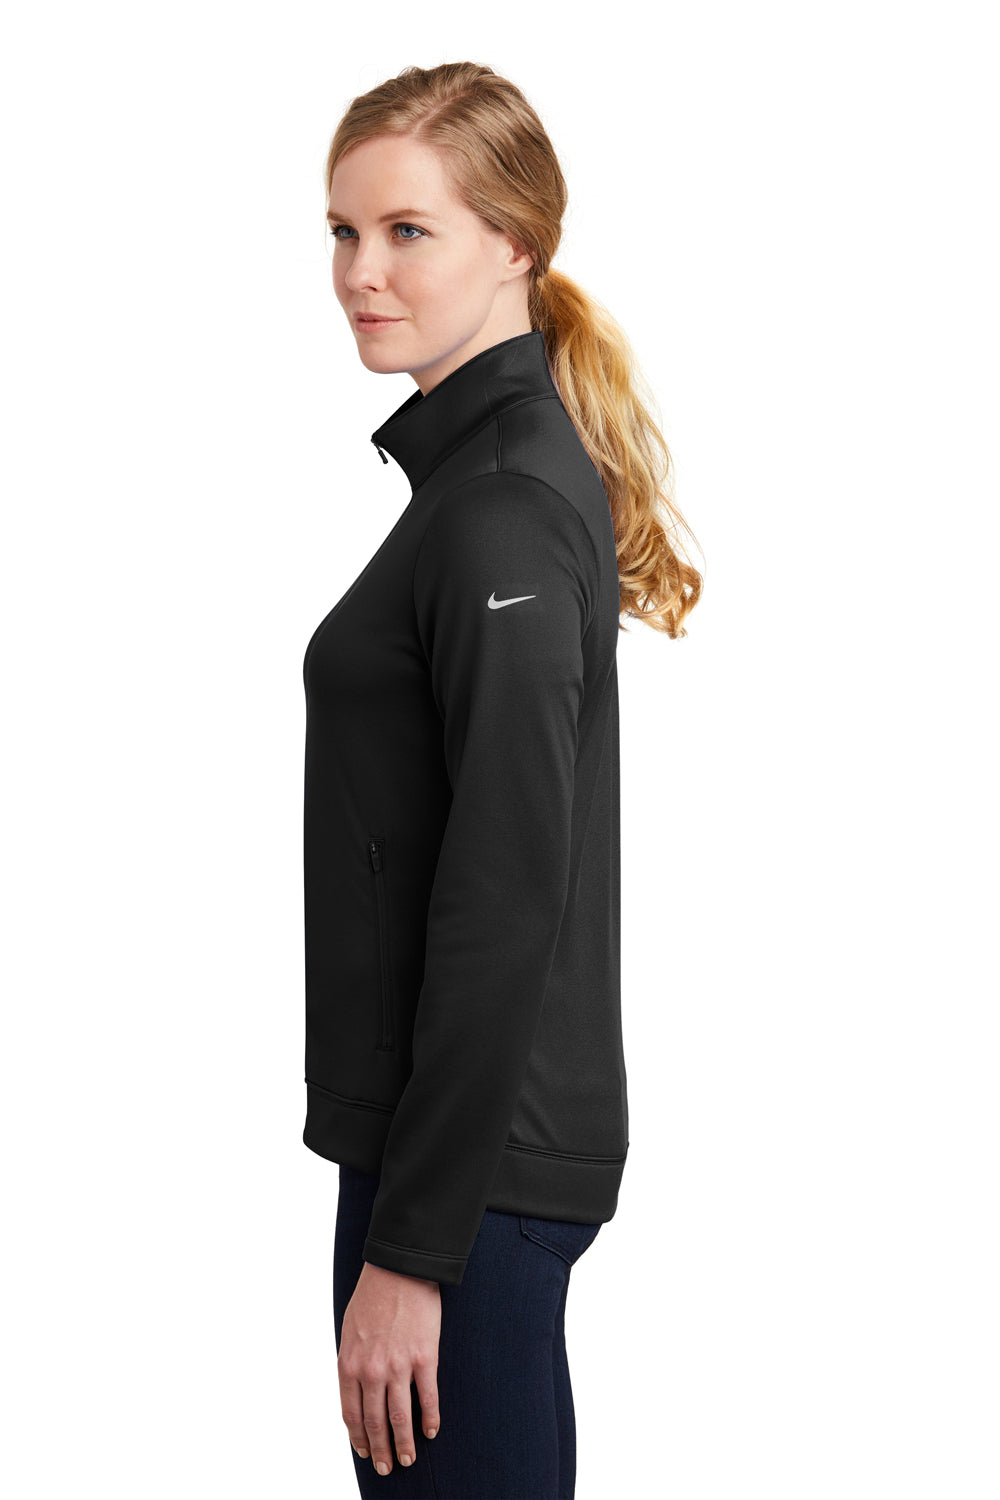 Nike NKAH6260 Womens Therma-Fit Moisture Wicking Fleece Full Zip Sweatshirt Black Side